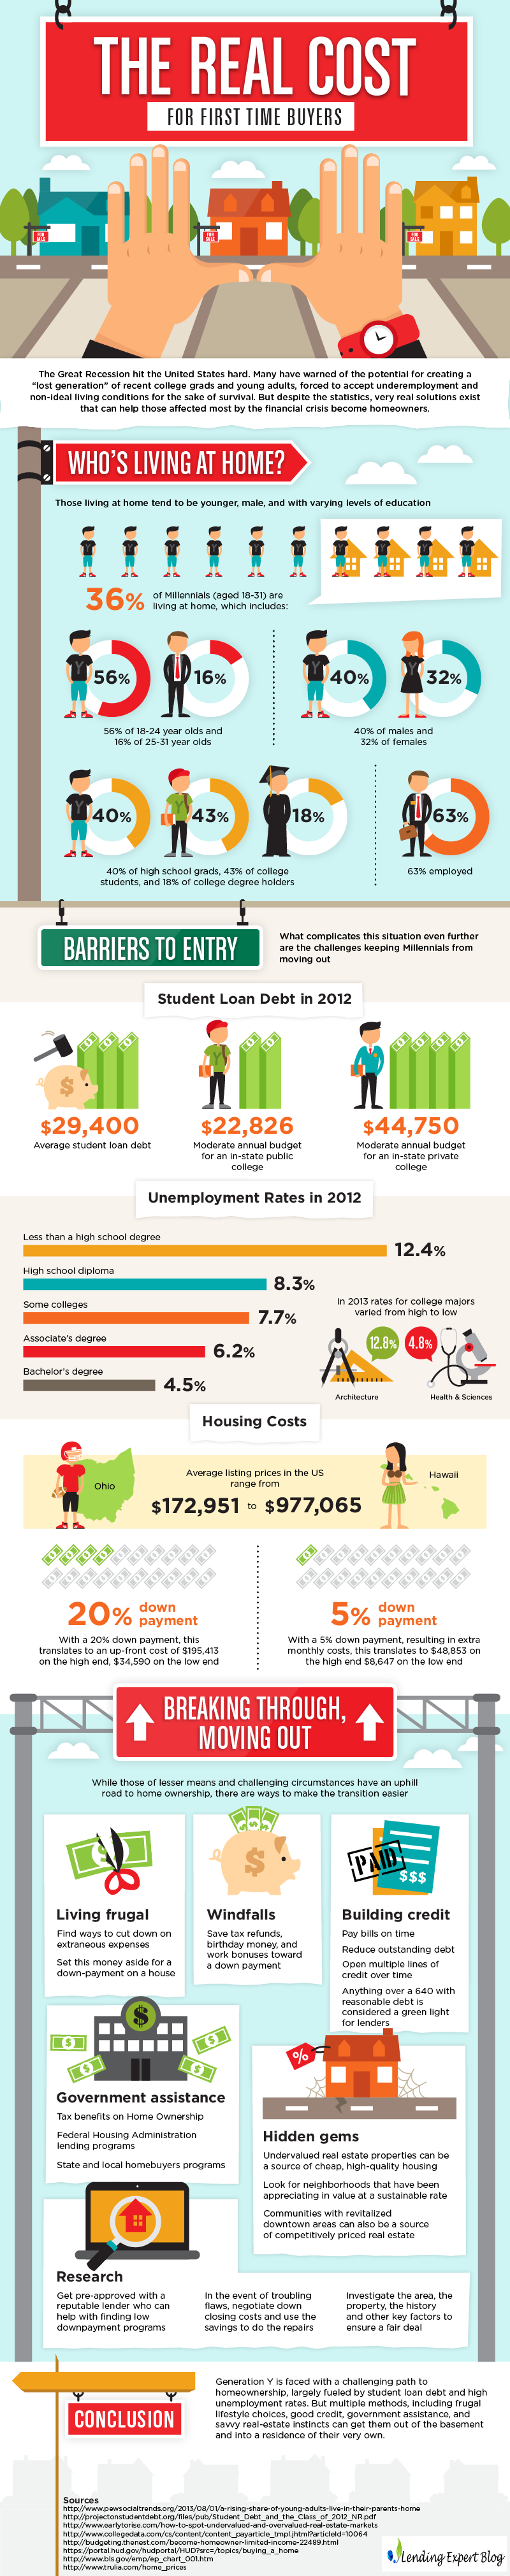 the-real-costs-for-first-time-buyers-infographic-1